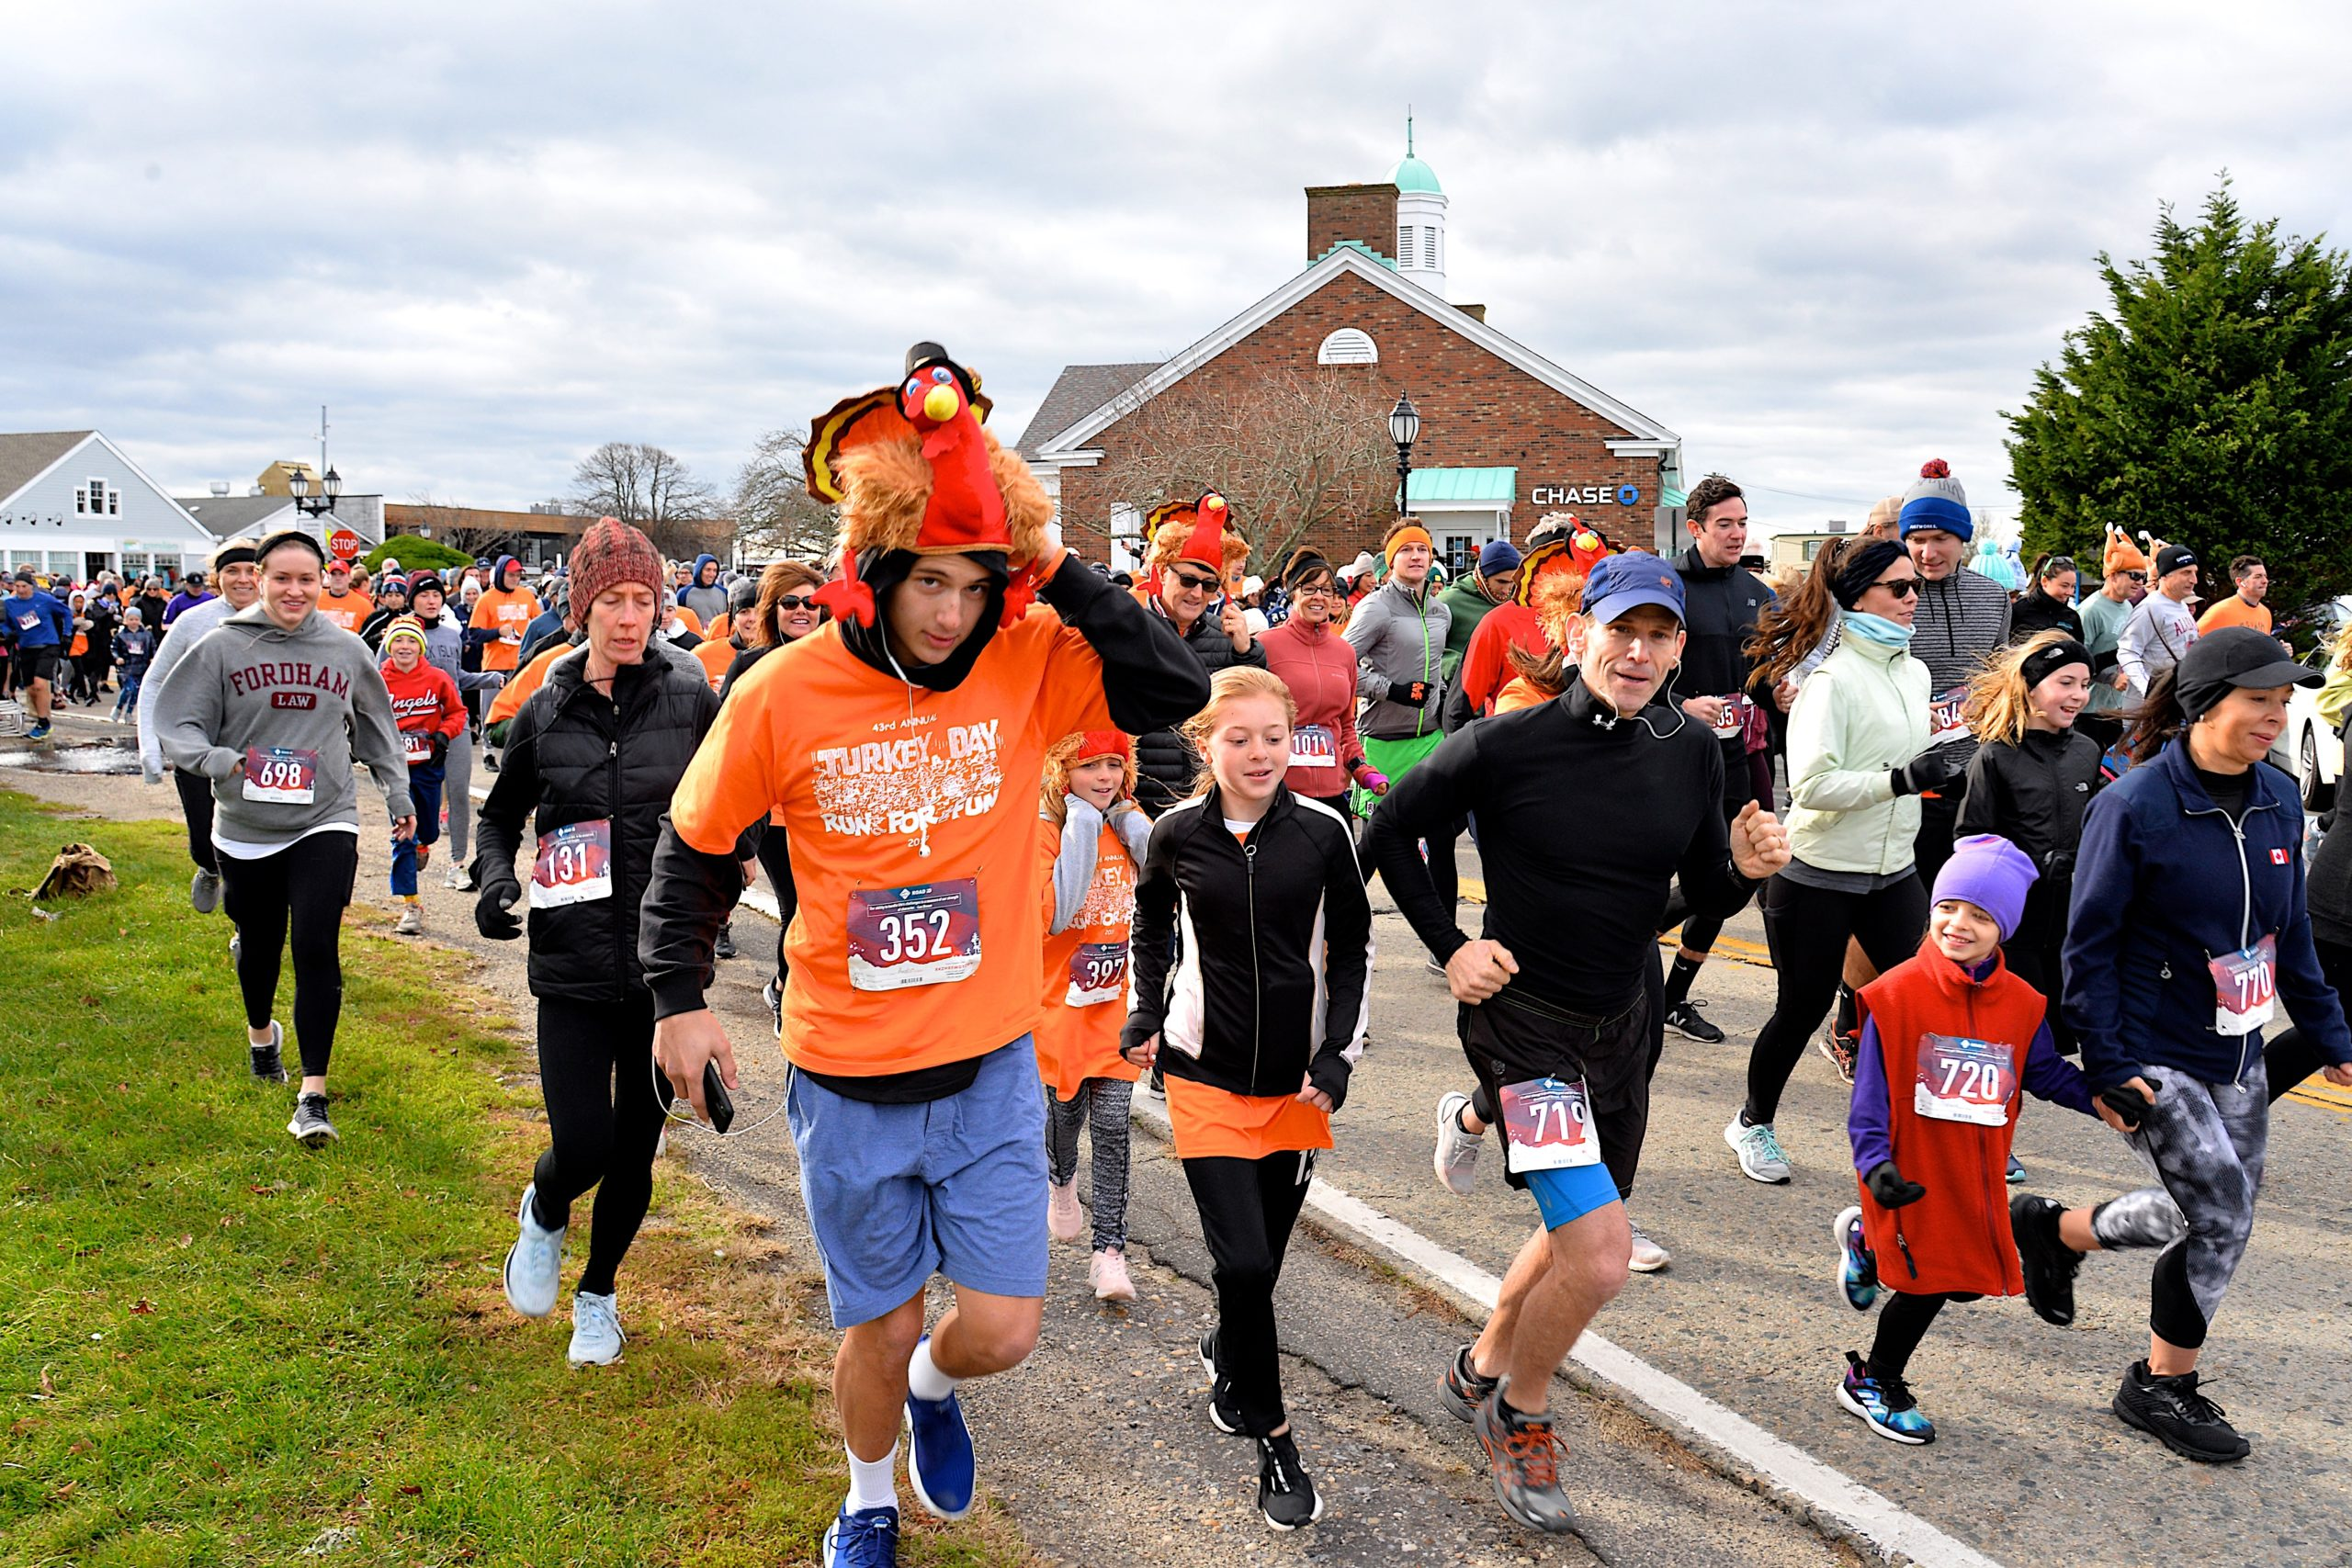 The annual Thanksgiving Day tradition continued in Montauk with the Turkey Trot around Fort Pond. KYRIL BROMLEY